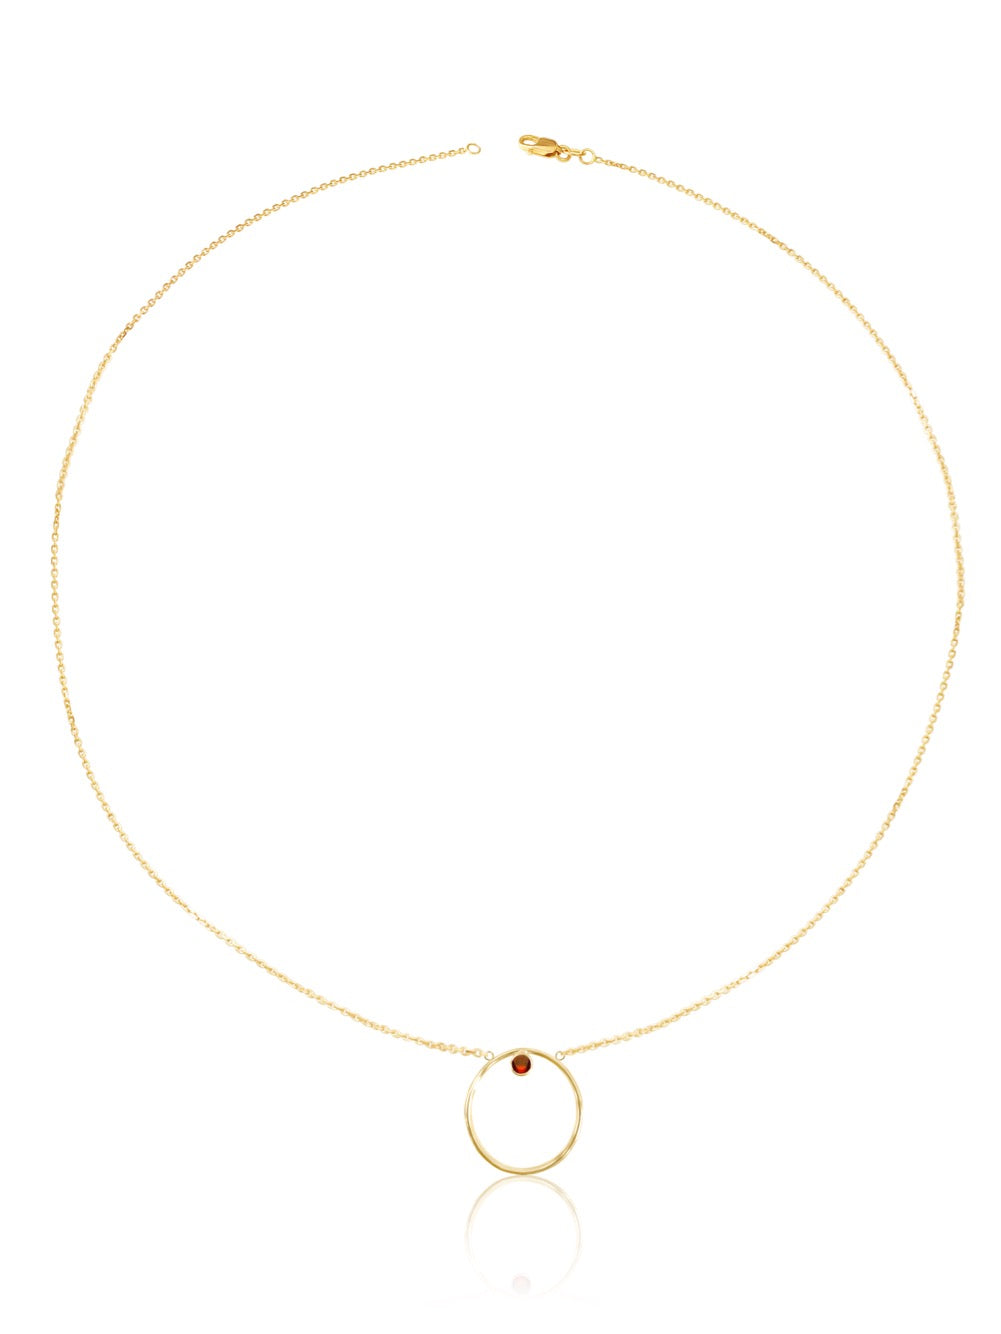 14K Gold Diamond/Gemstone Circle Necklace